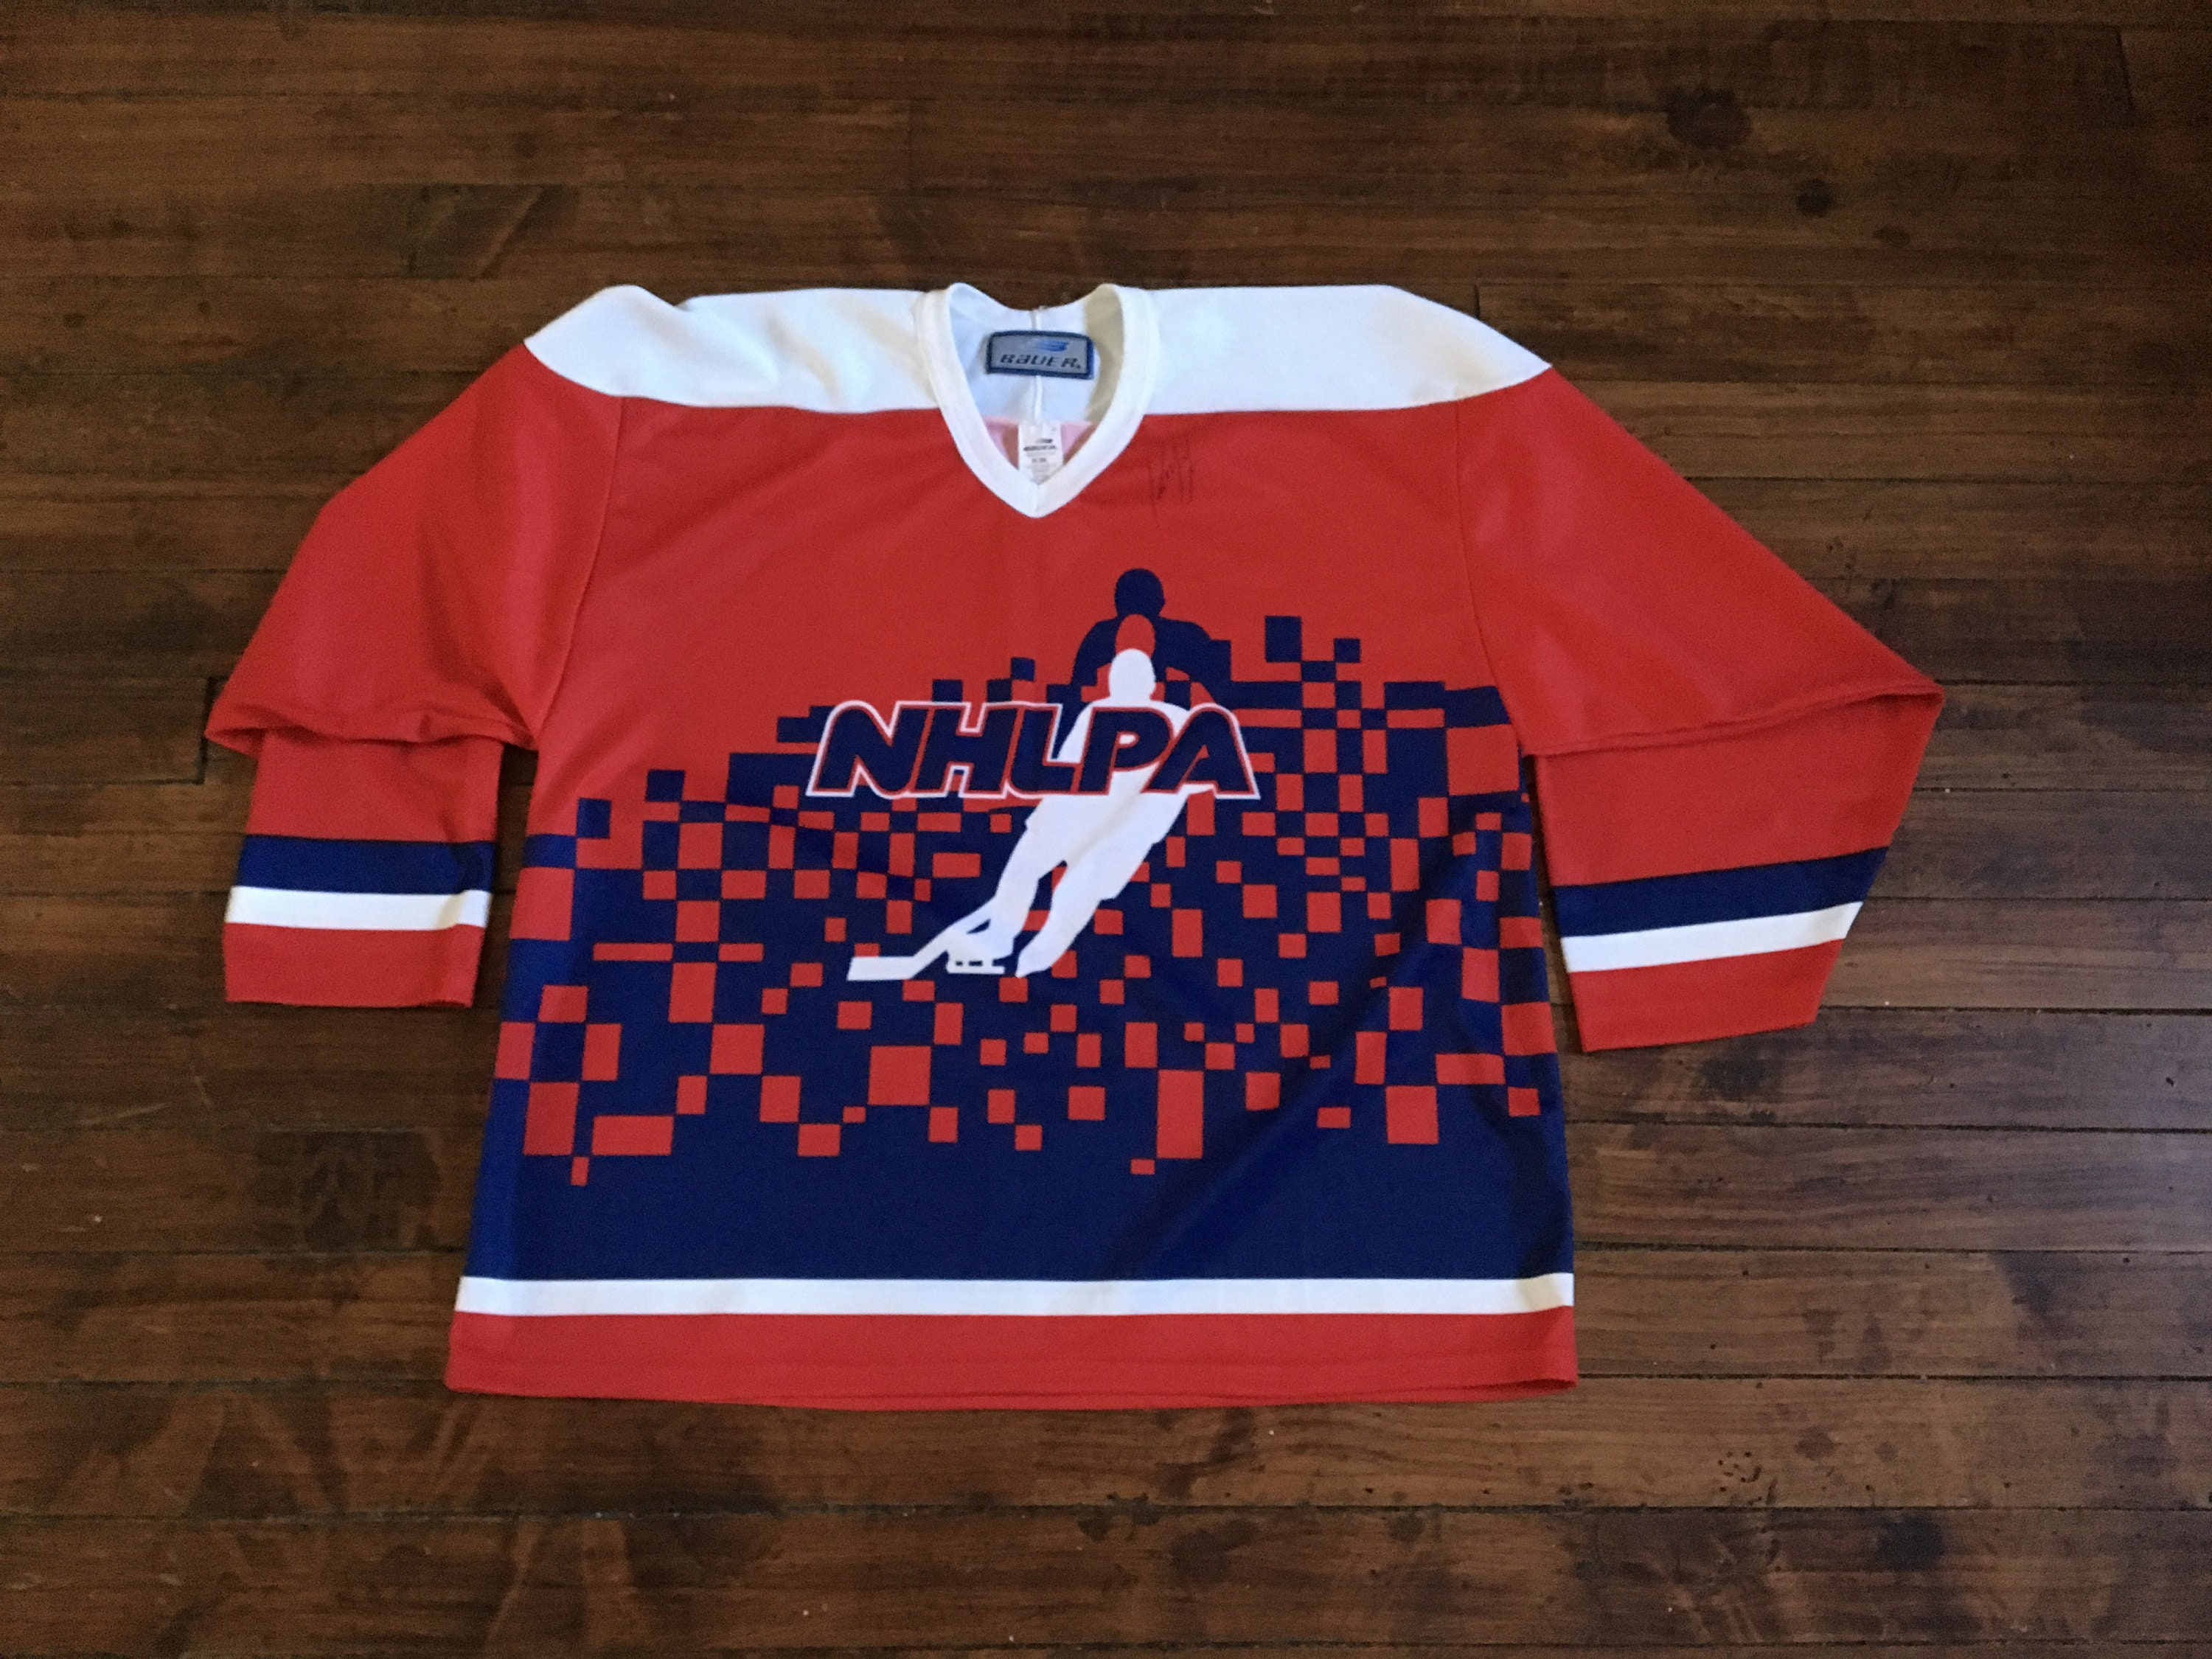 d5a3f244512 Bauer NHLPA hockey jersey red blue autographed NHL hockey | Etsy